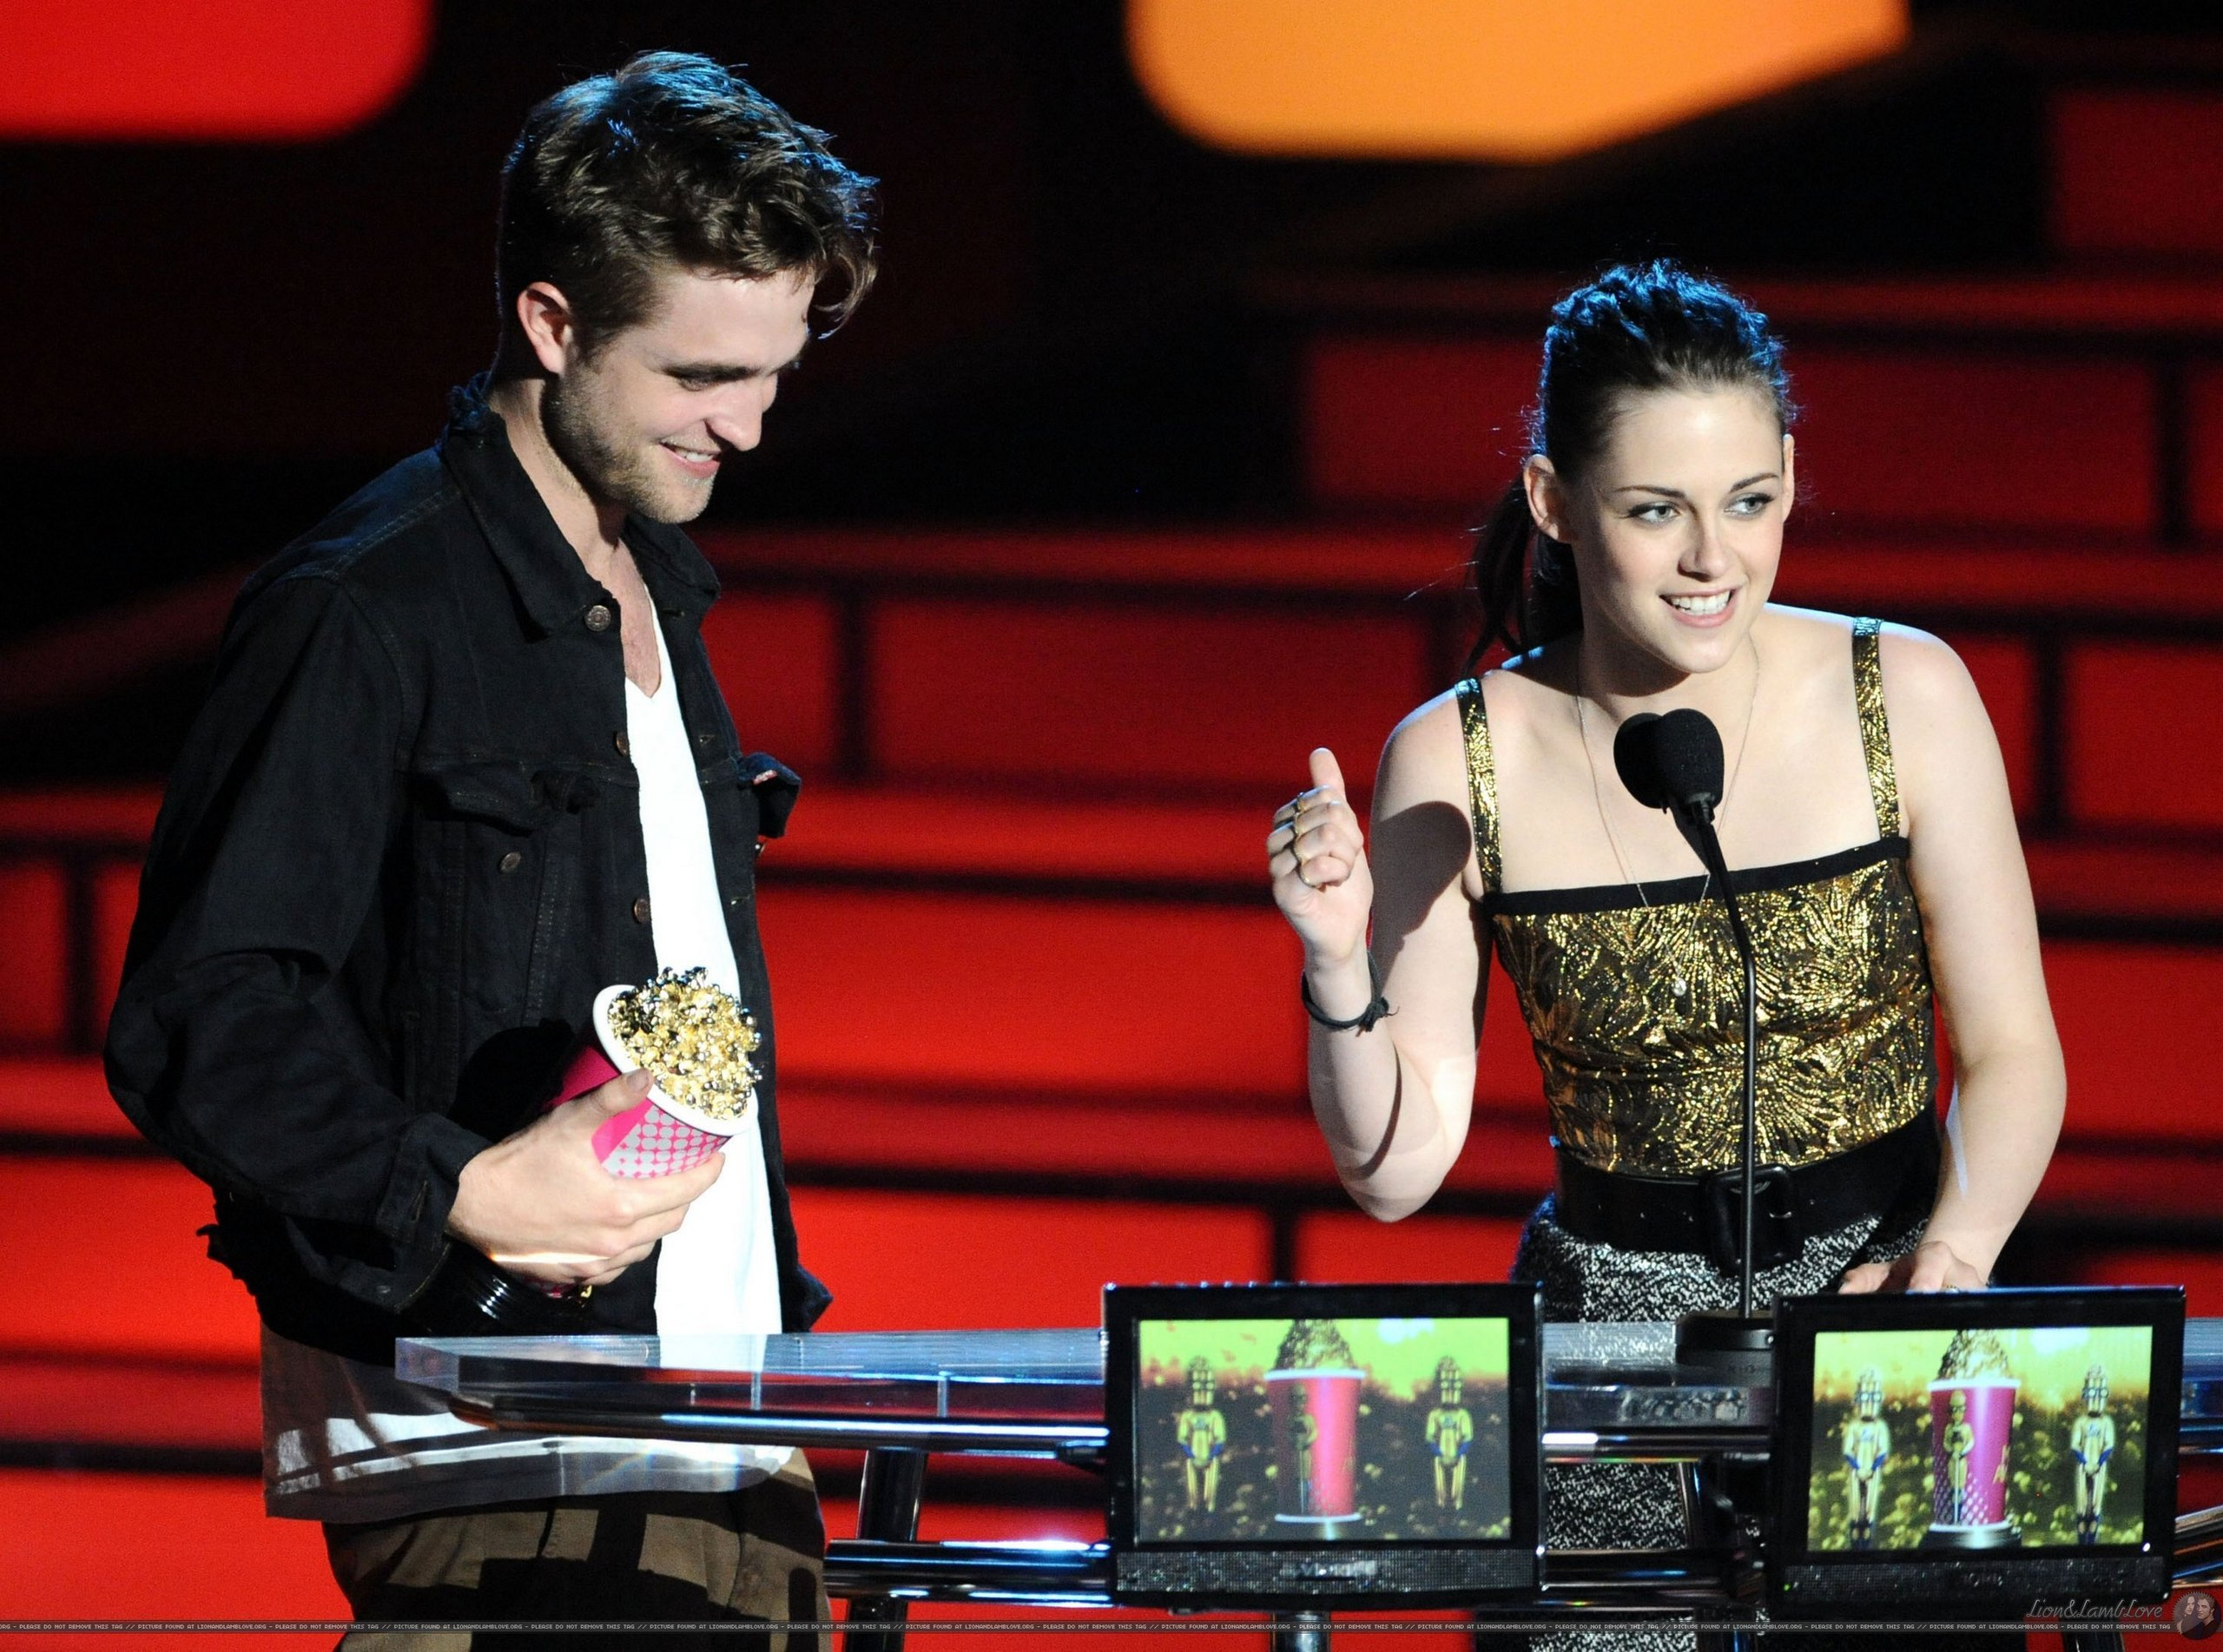 Rob & Kristen এমটিভি Movie Awards 2010